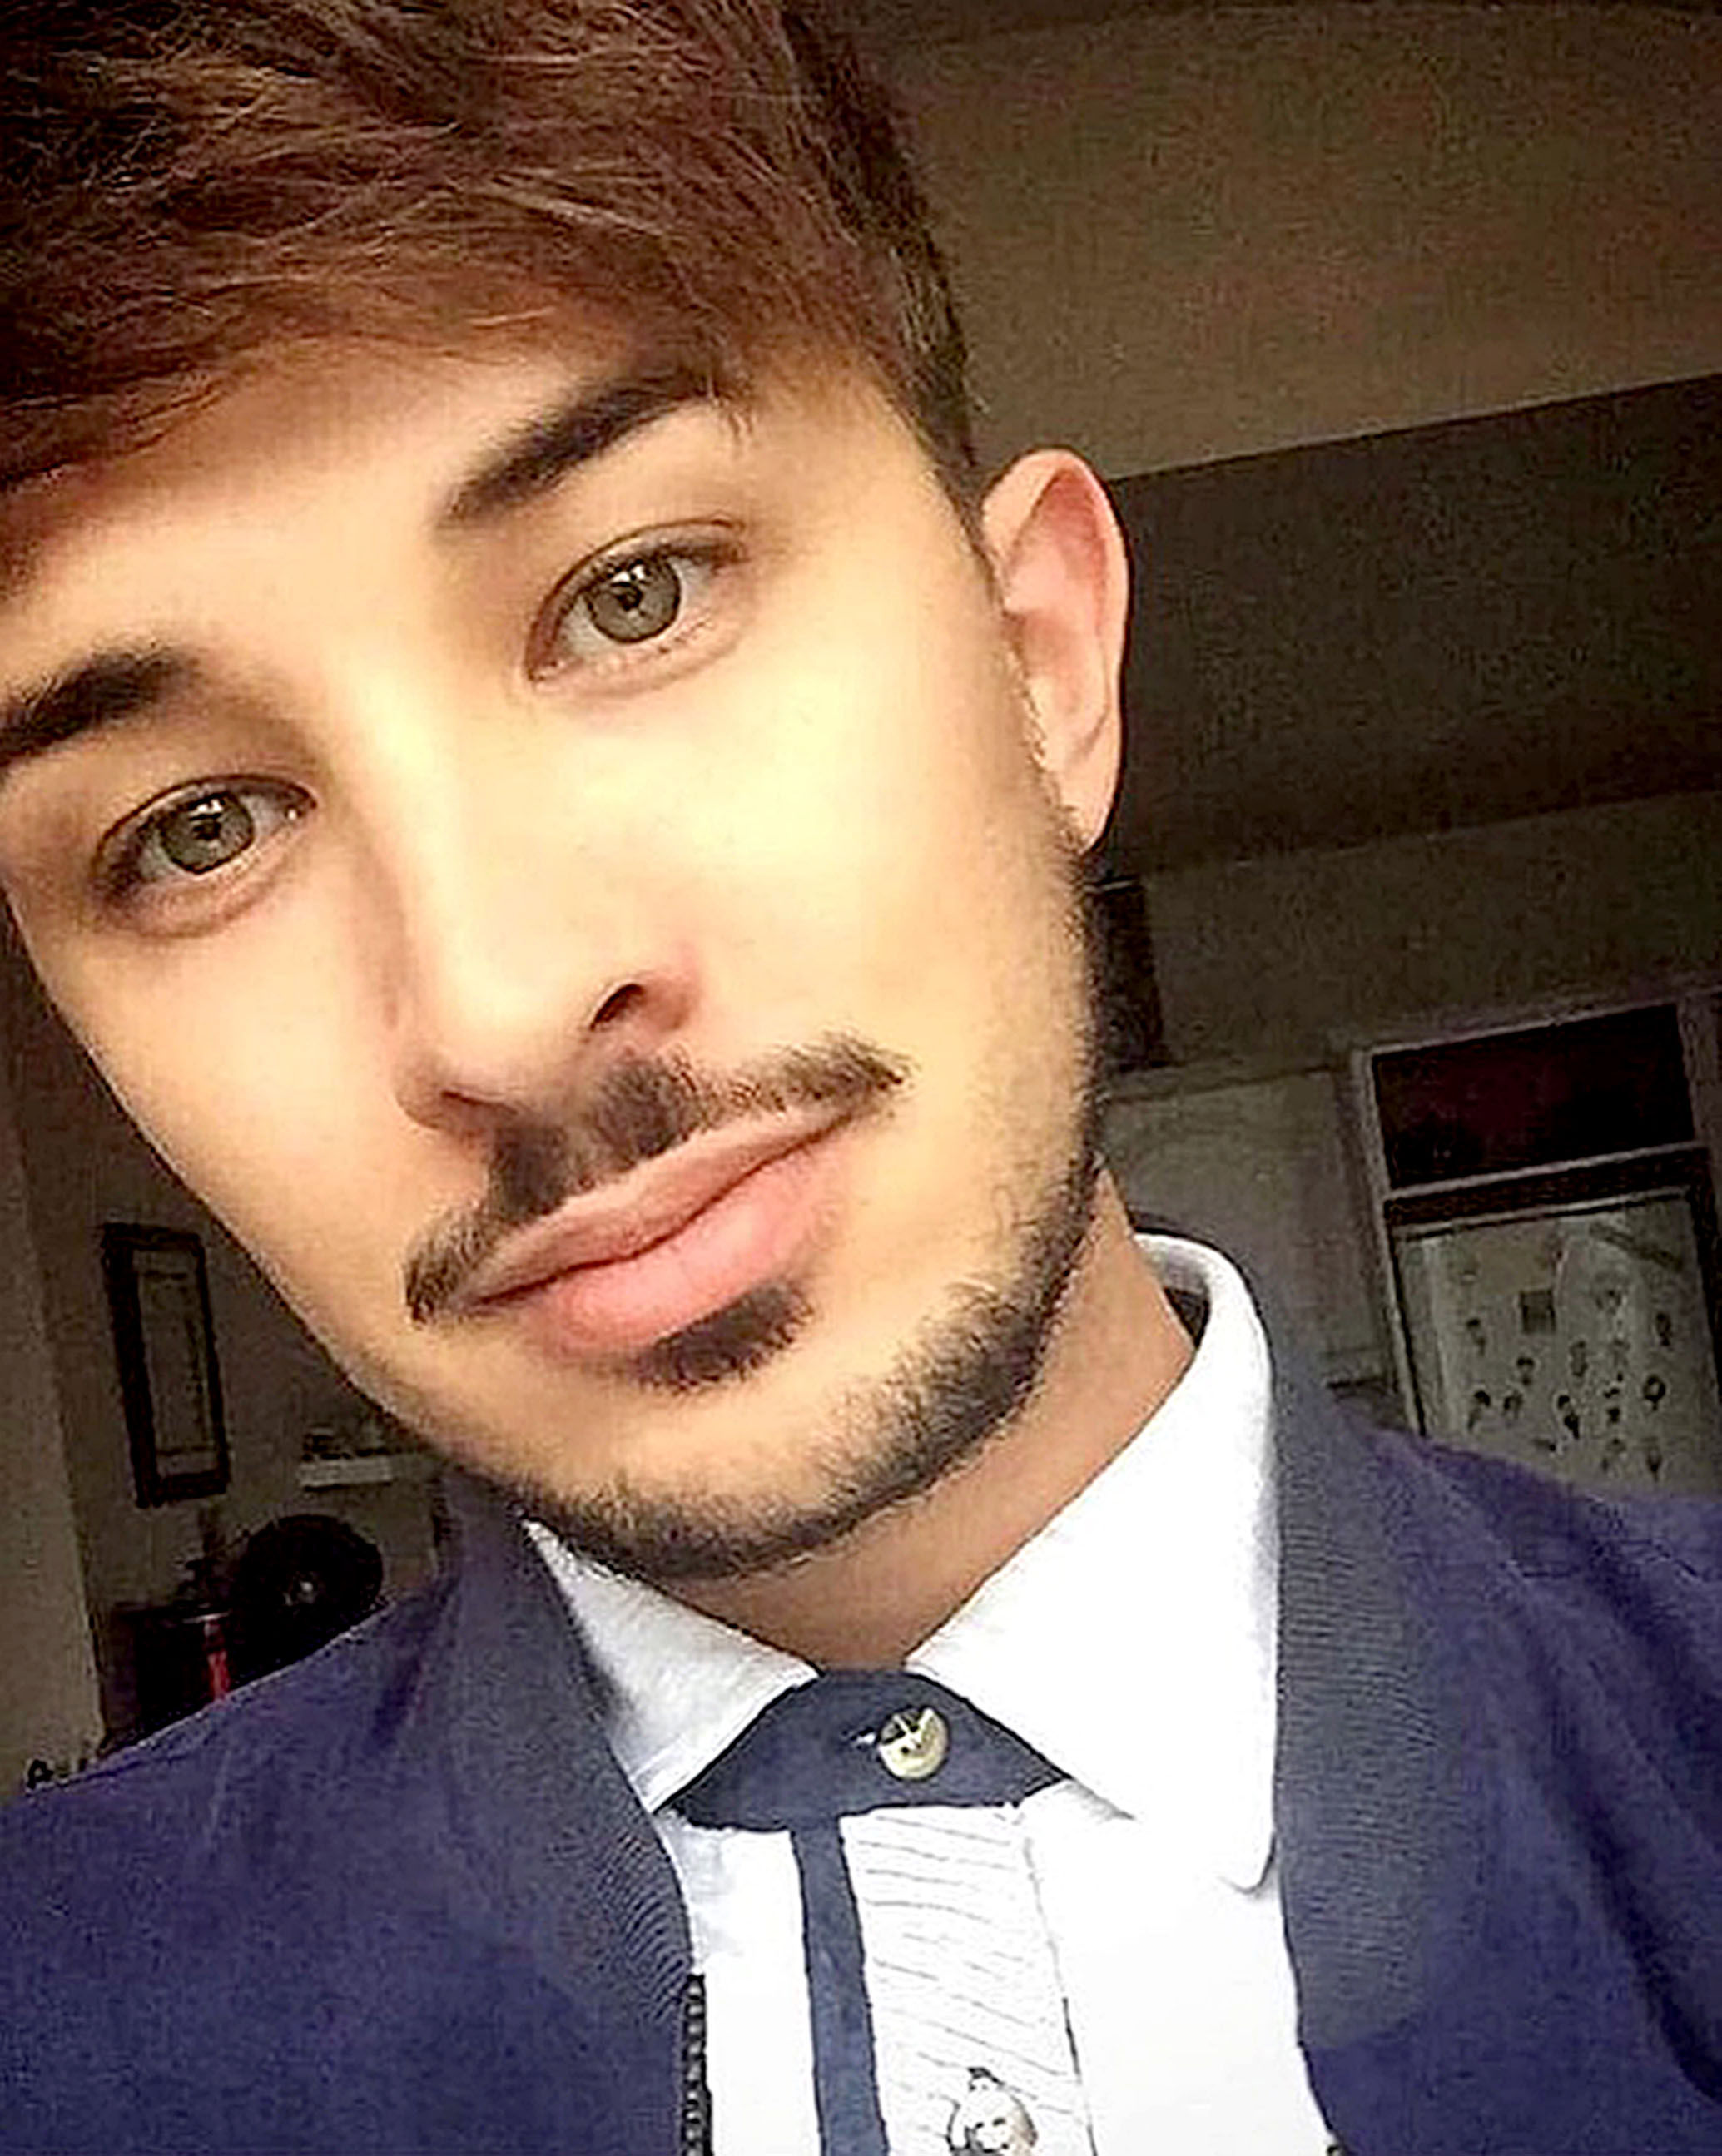 Manchester attack: Martyn Hett's funeral to take place